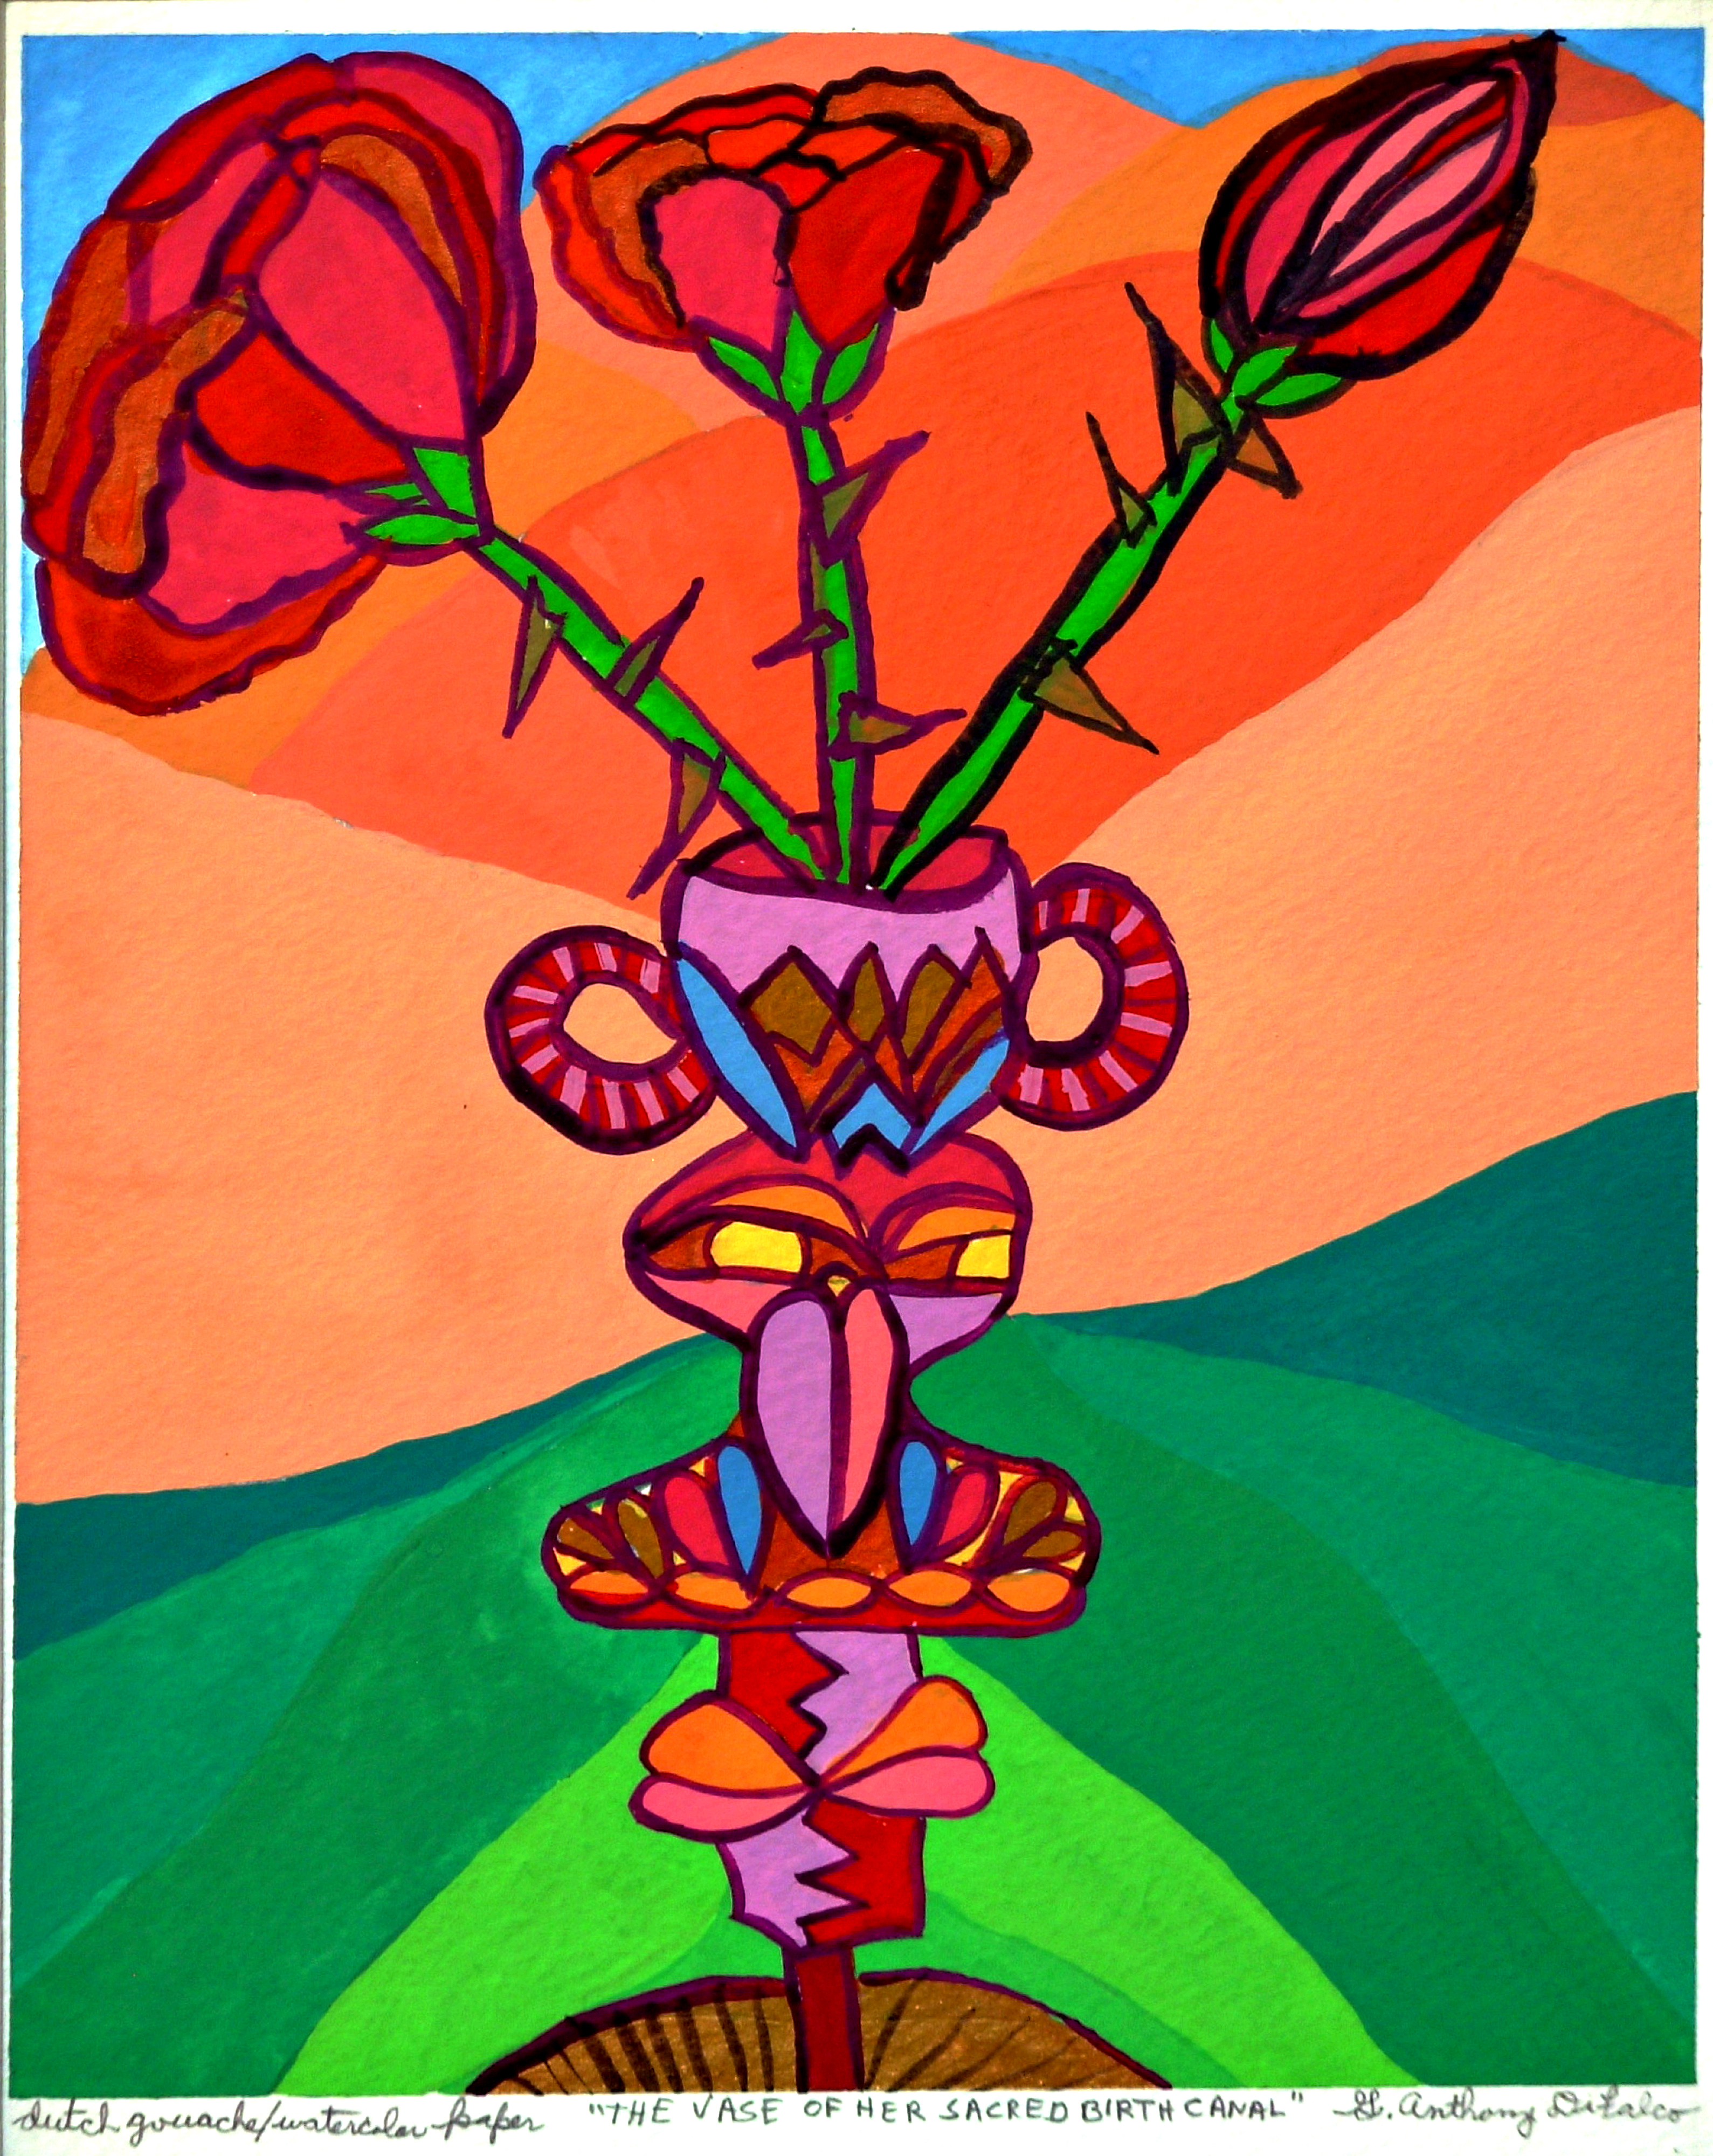 Jerry  Di Falco Artwork THE VASE OF HER SACRED BIRTH CANAL, 2015 Watercolor, Optical